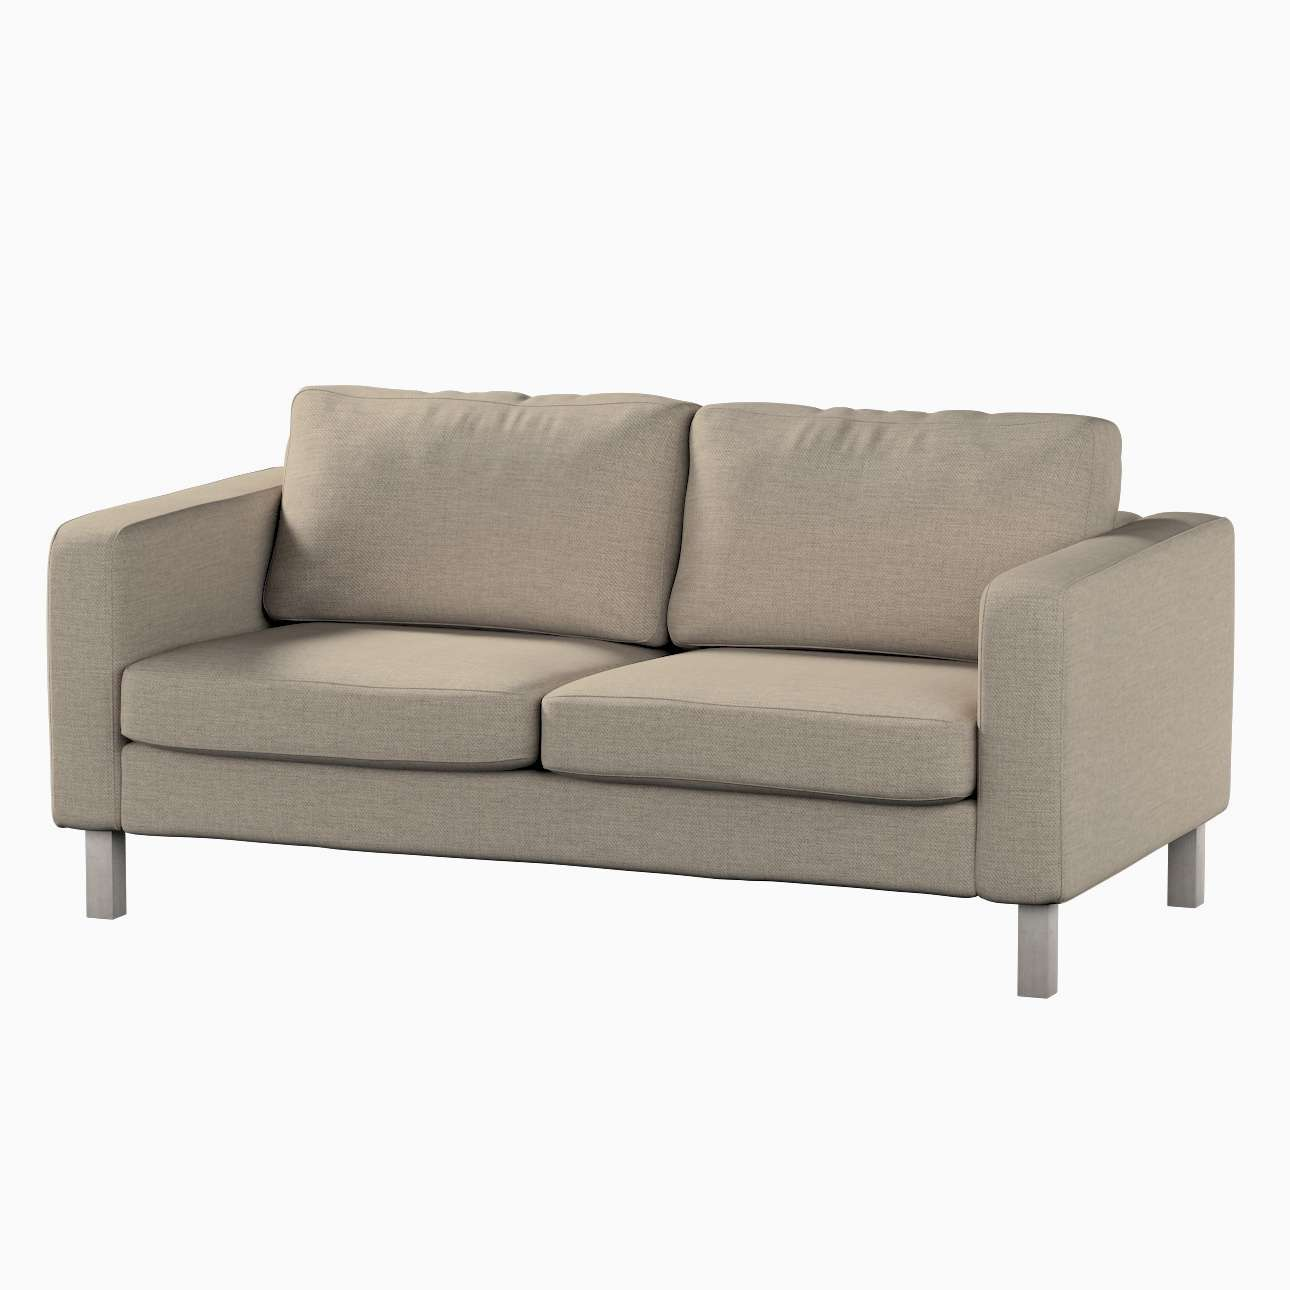 Karlstad 2-seater sofa cover in collection Living, fabric: 104-87